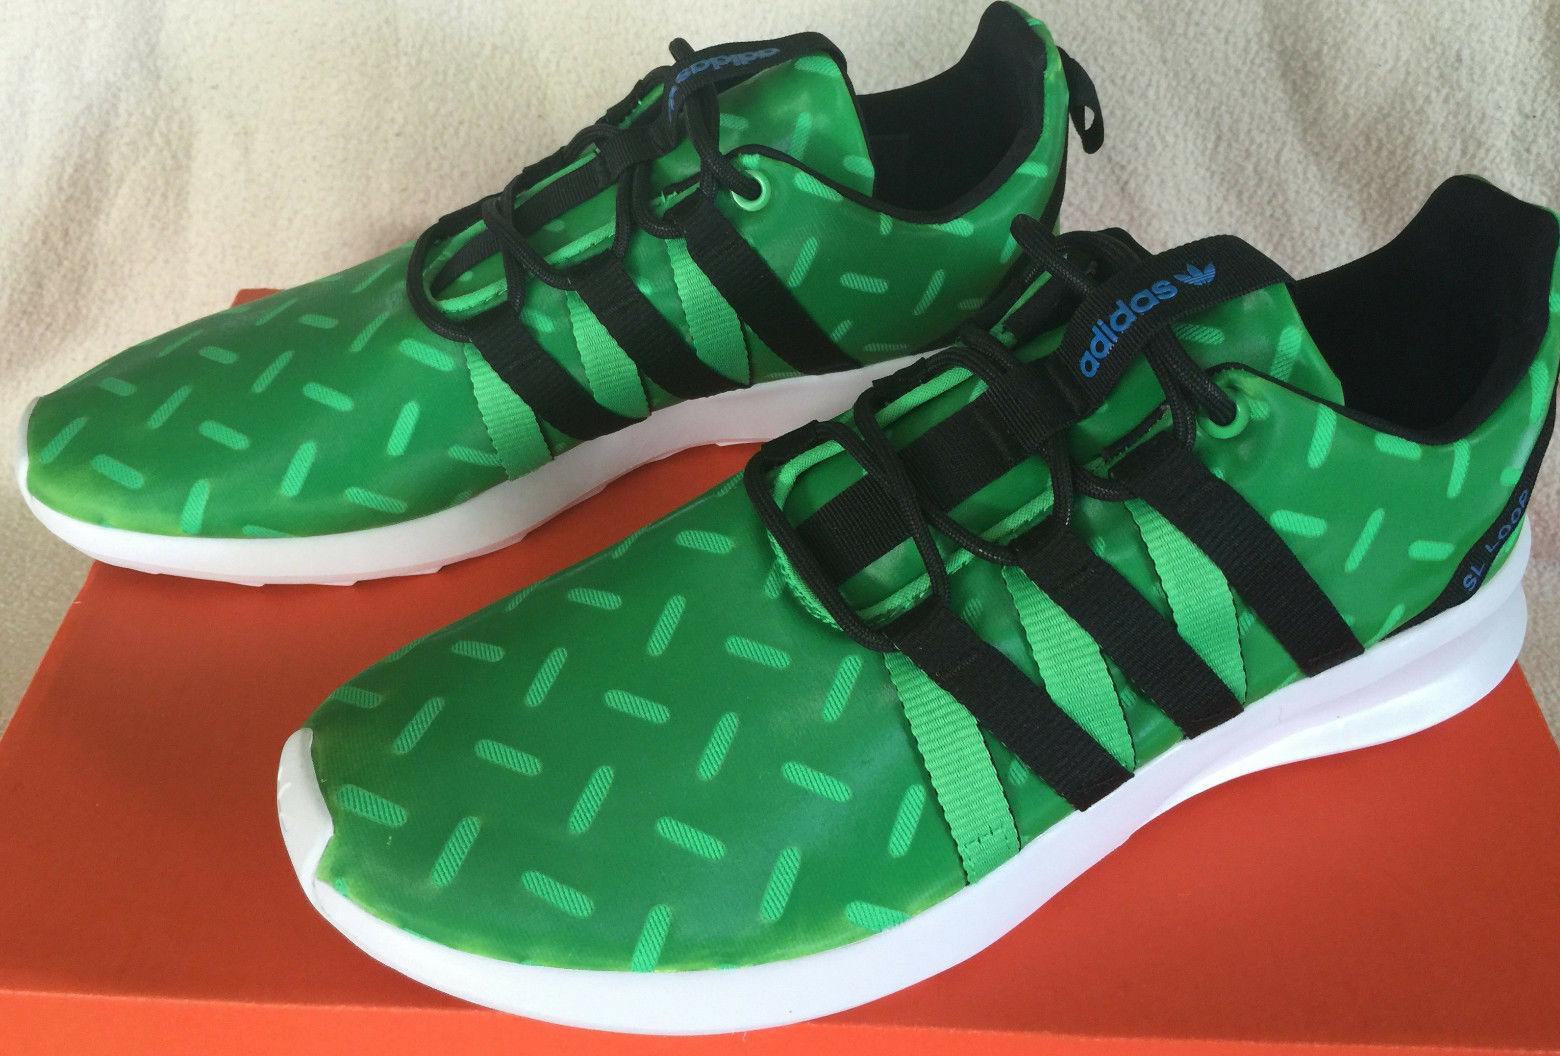 Adidas SL Loop Chrometech Q16764 Retro Green Sneakers Running shoes Men's 10 Run